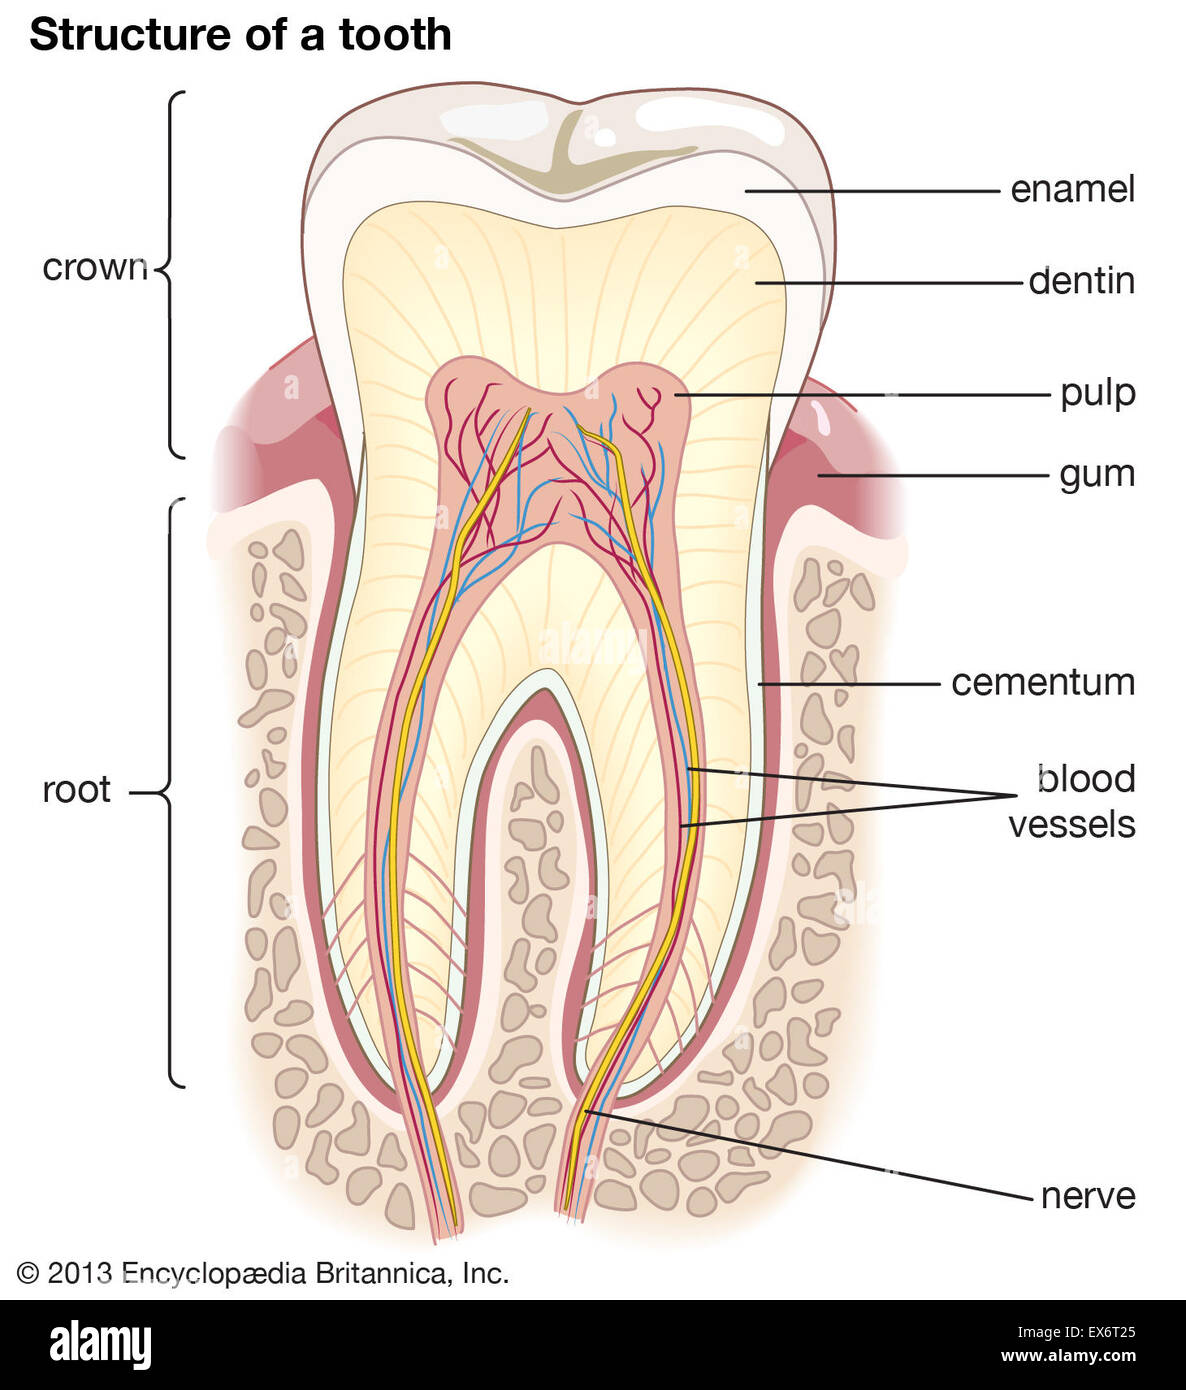 Human Tooth Structure Stock Photos & Human Tooth Structure Stock ...